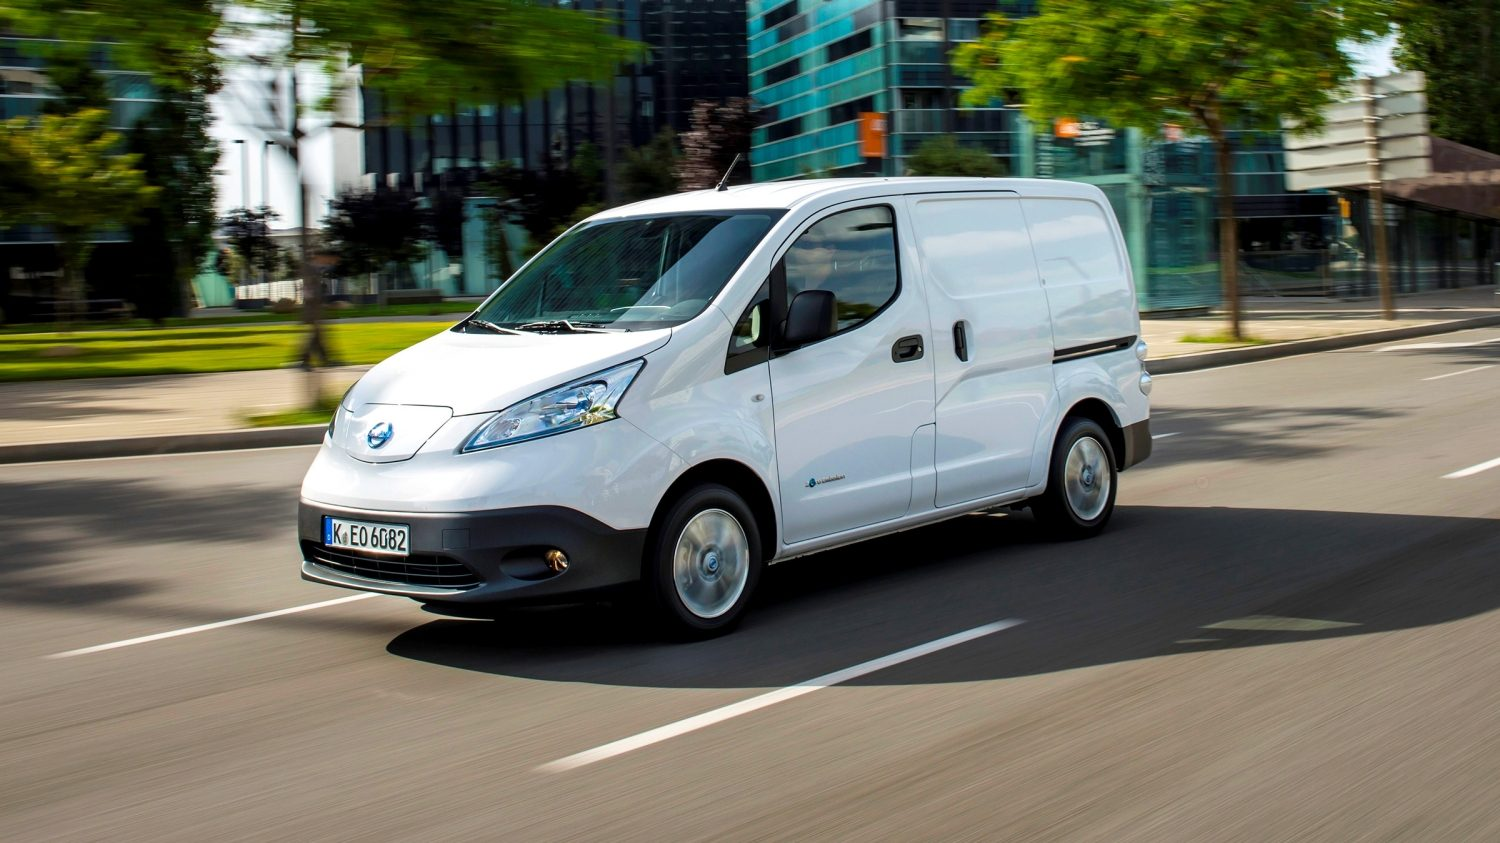 New Nissan e-NV200 driving shot in city